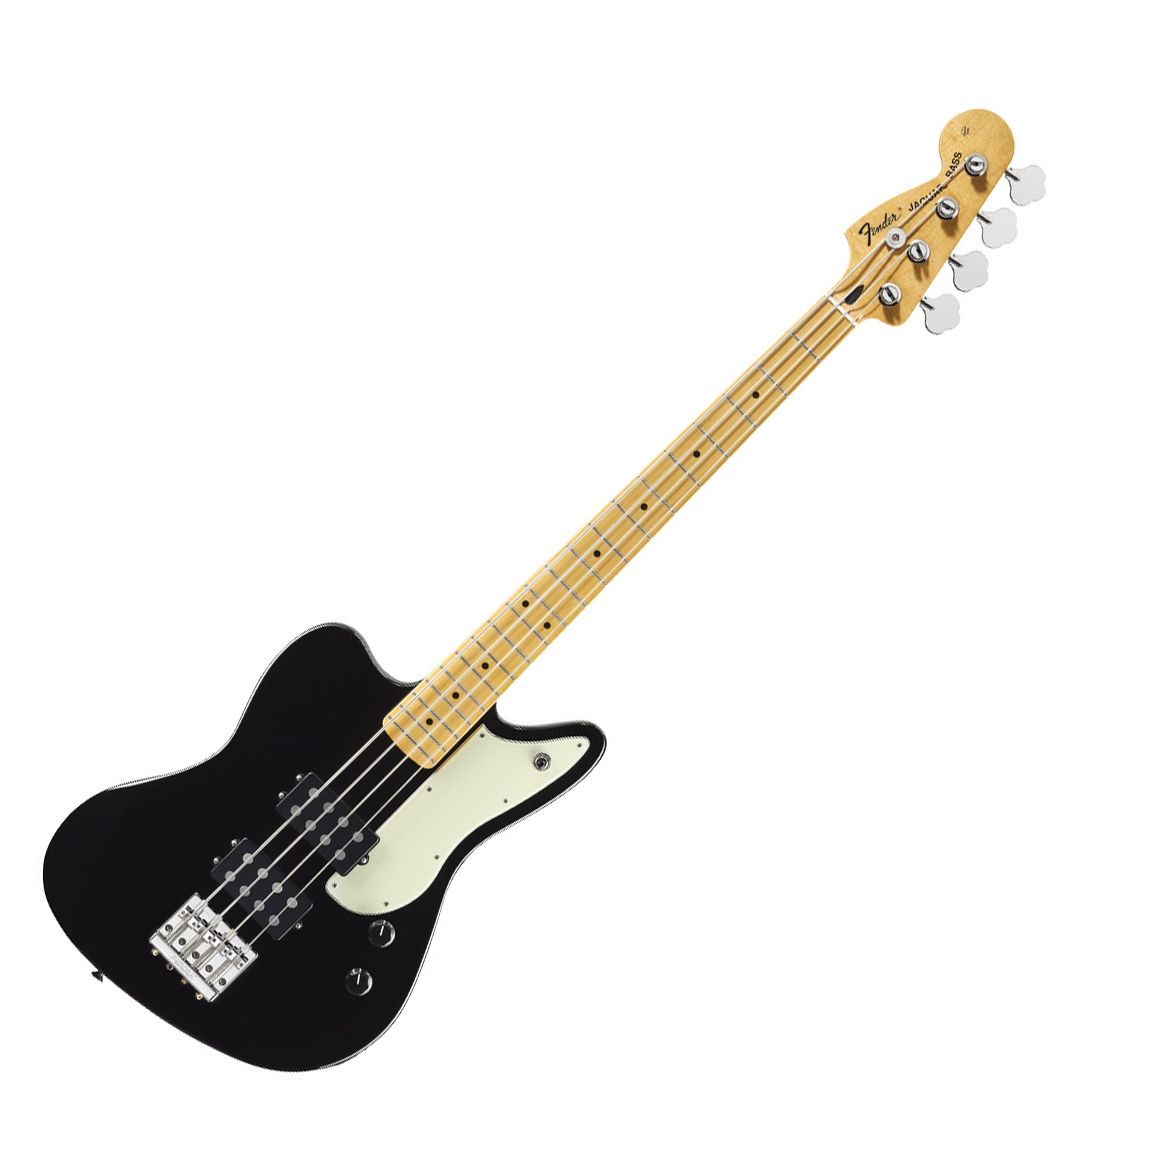 bass review for bassist fender pawn shop reverse jaguar bass. Black Bedroom Furniture Sets. Home Design Ideas